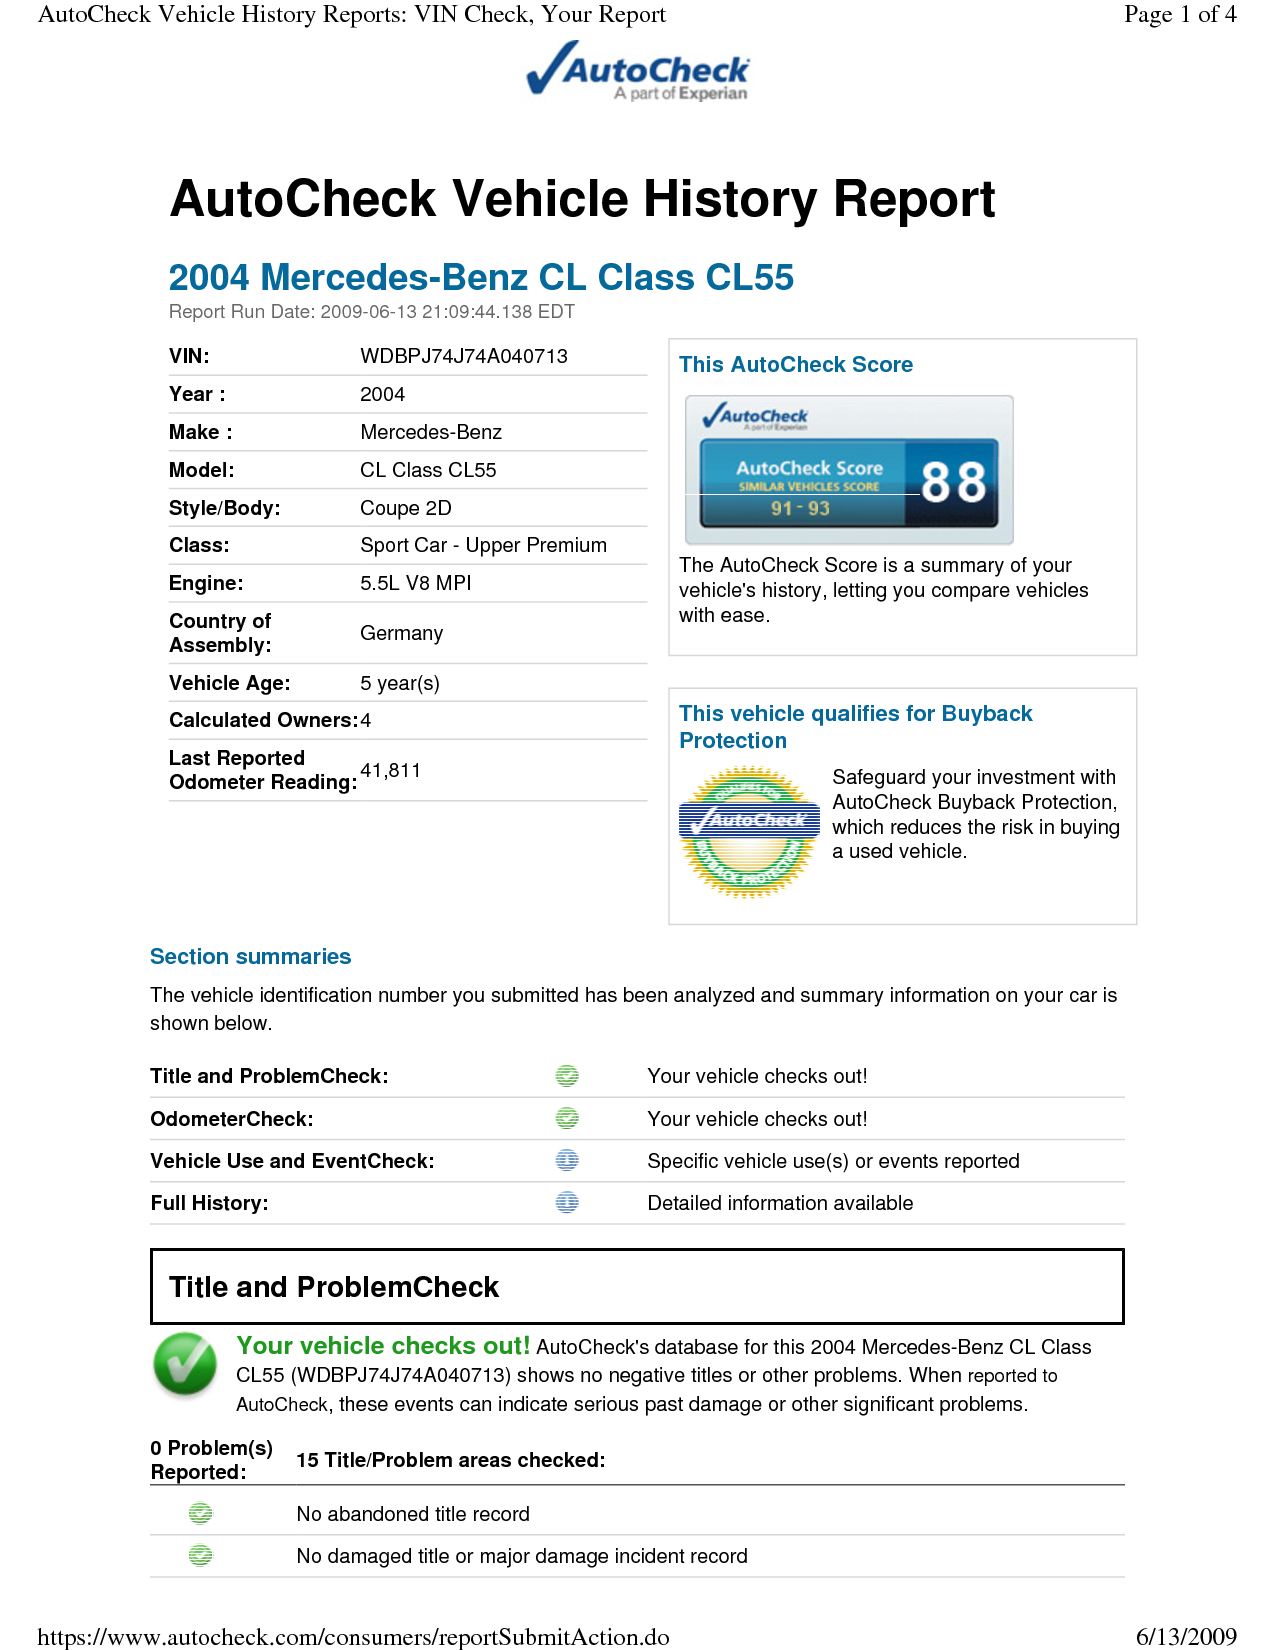 Free Carfax History Report No Charge Inspirational Carfax Vs Autocheck Reports What You Don T Know